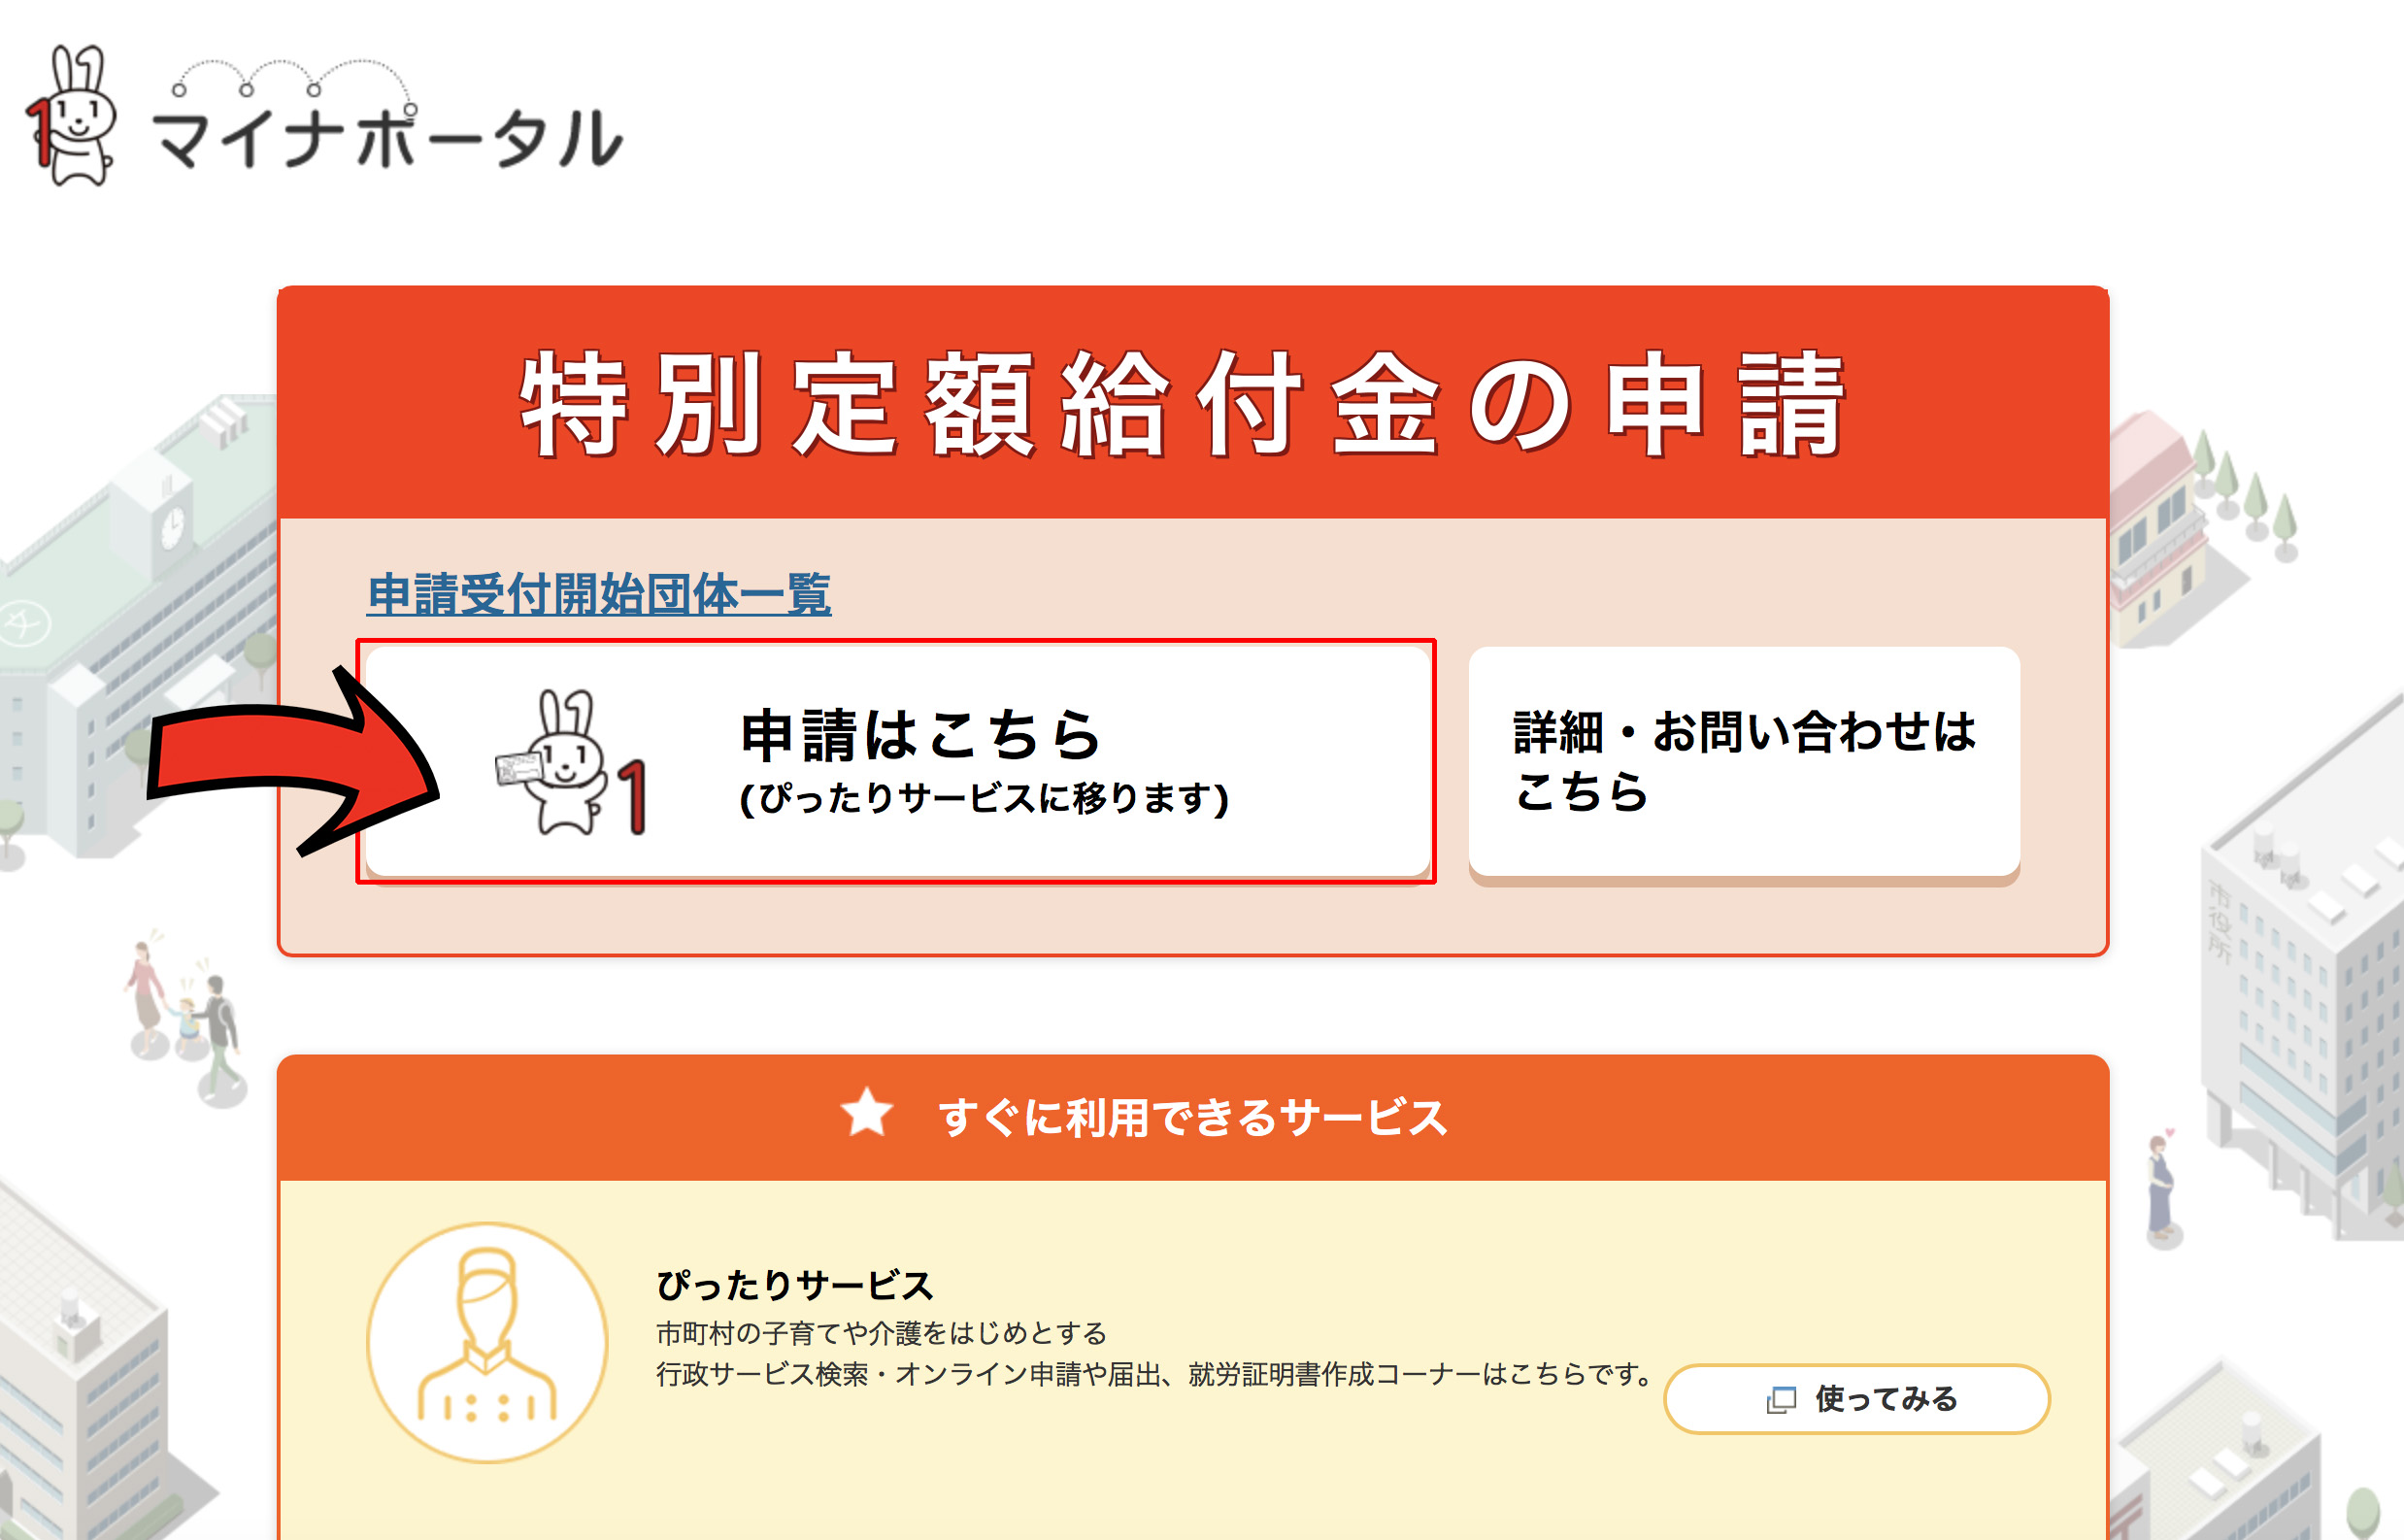 How to check when the special benefit from the Japanese government will be paid with your smart phone.